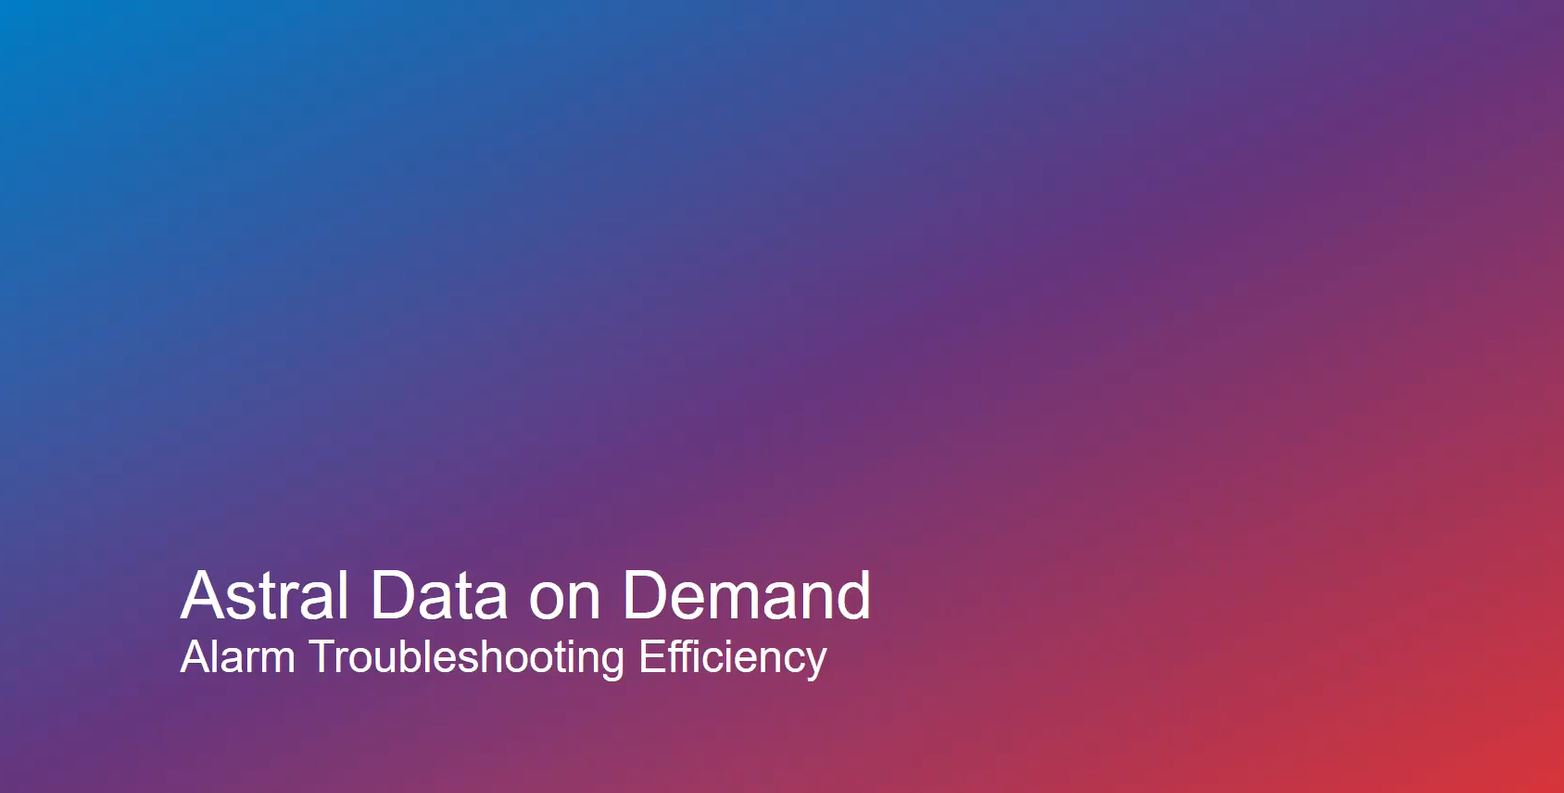 Astral Data on Demand